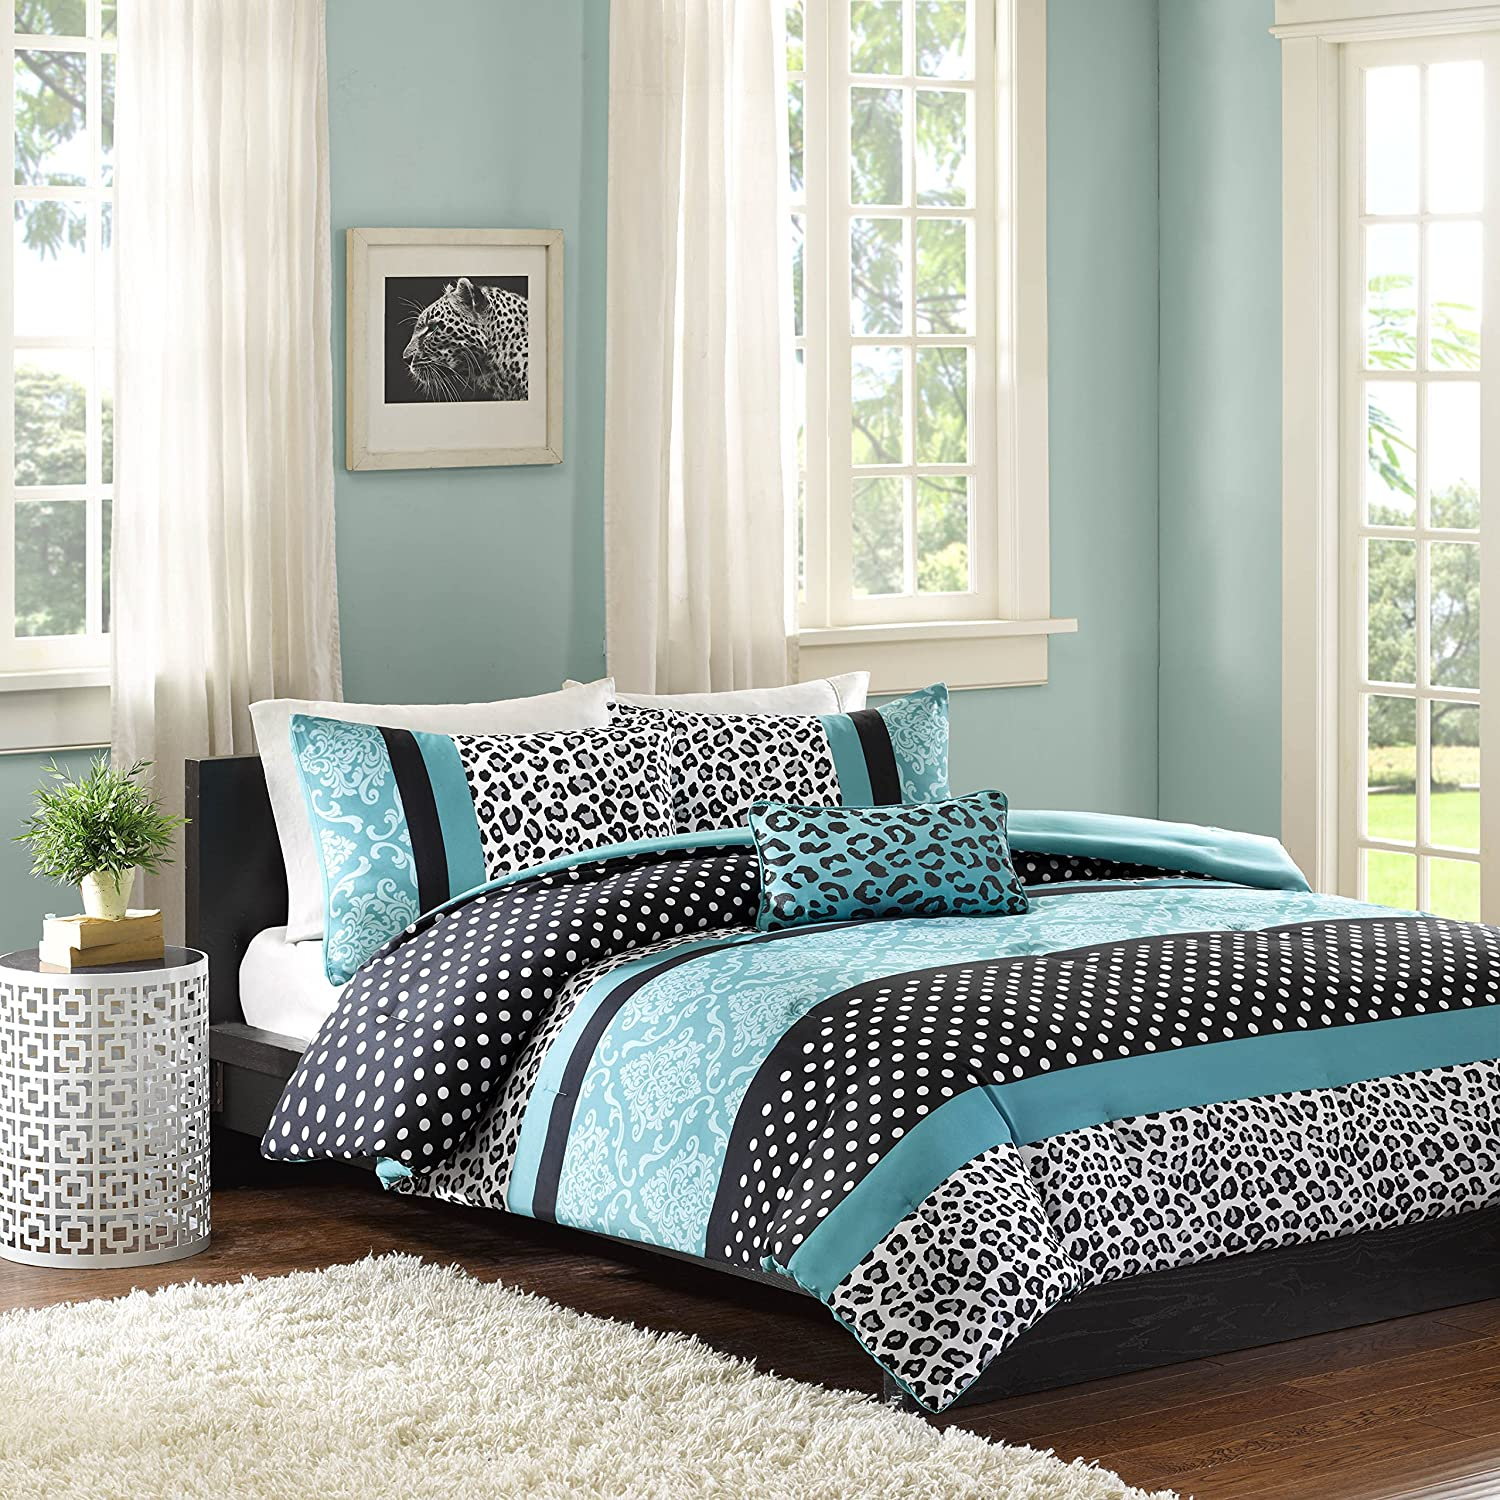 Mi Zone Chloe Comforter Set Full/Queen Size - Teal, Polka Dots, Damask, Leopard – 4 Piece Bed Sets – Ultra Soft Microfiber Teen Bedding